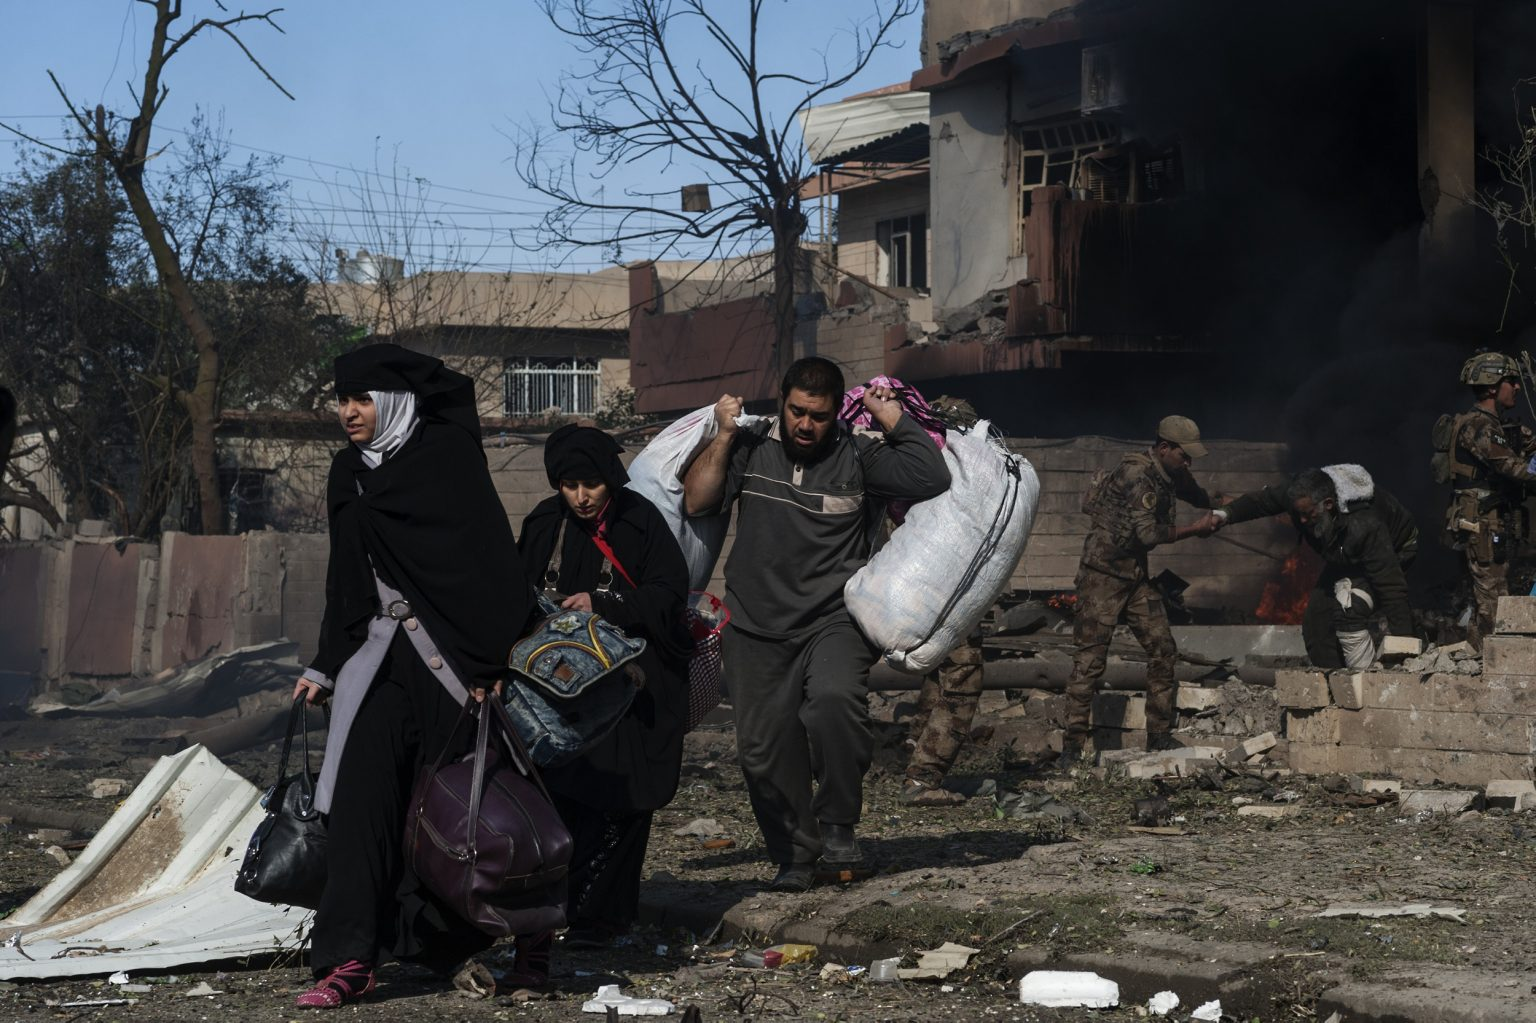 Iraq, Mosul- November 19th 2016 -Iraqi army operation in the area of Tahrir, during the battle to liberate the area from the fighters of the so called Islamic State, the army evacuated several civilians trapped in their houses due the heavy fightings. Ph.Giulio Piscitelli